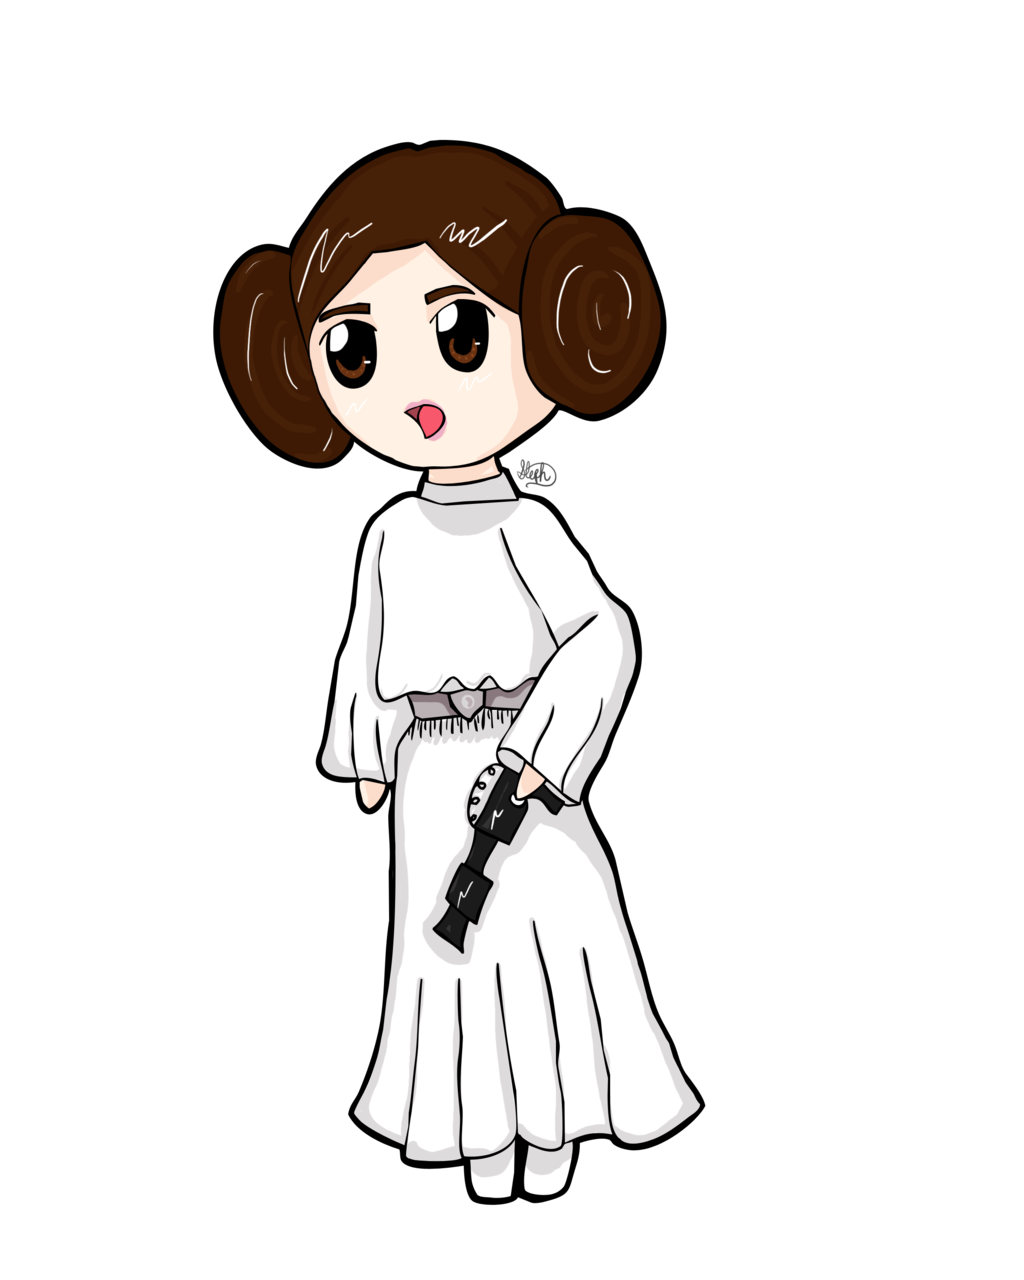 Star Wars clipart doodles Star by  Princess Leia